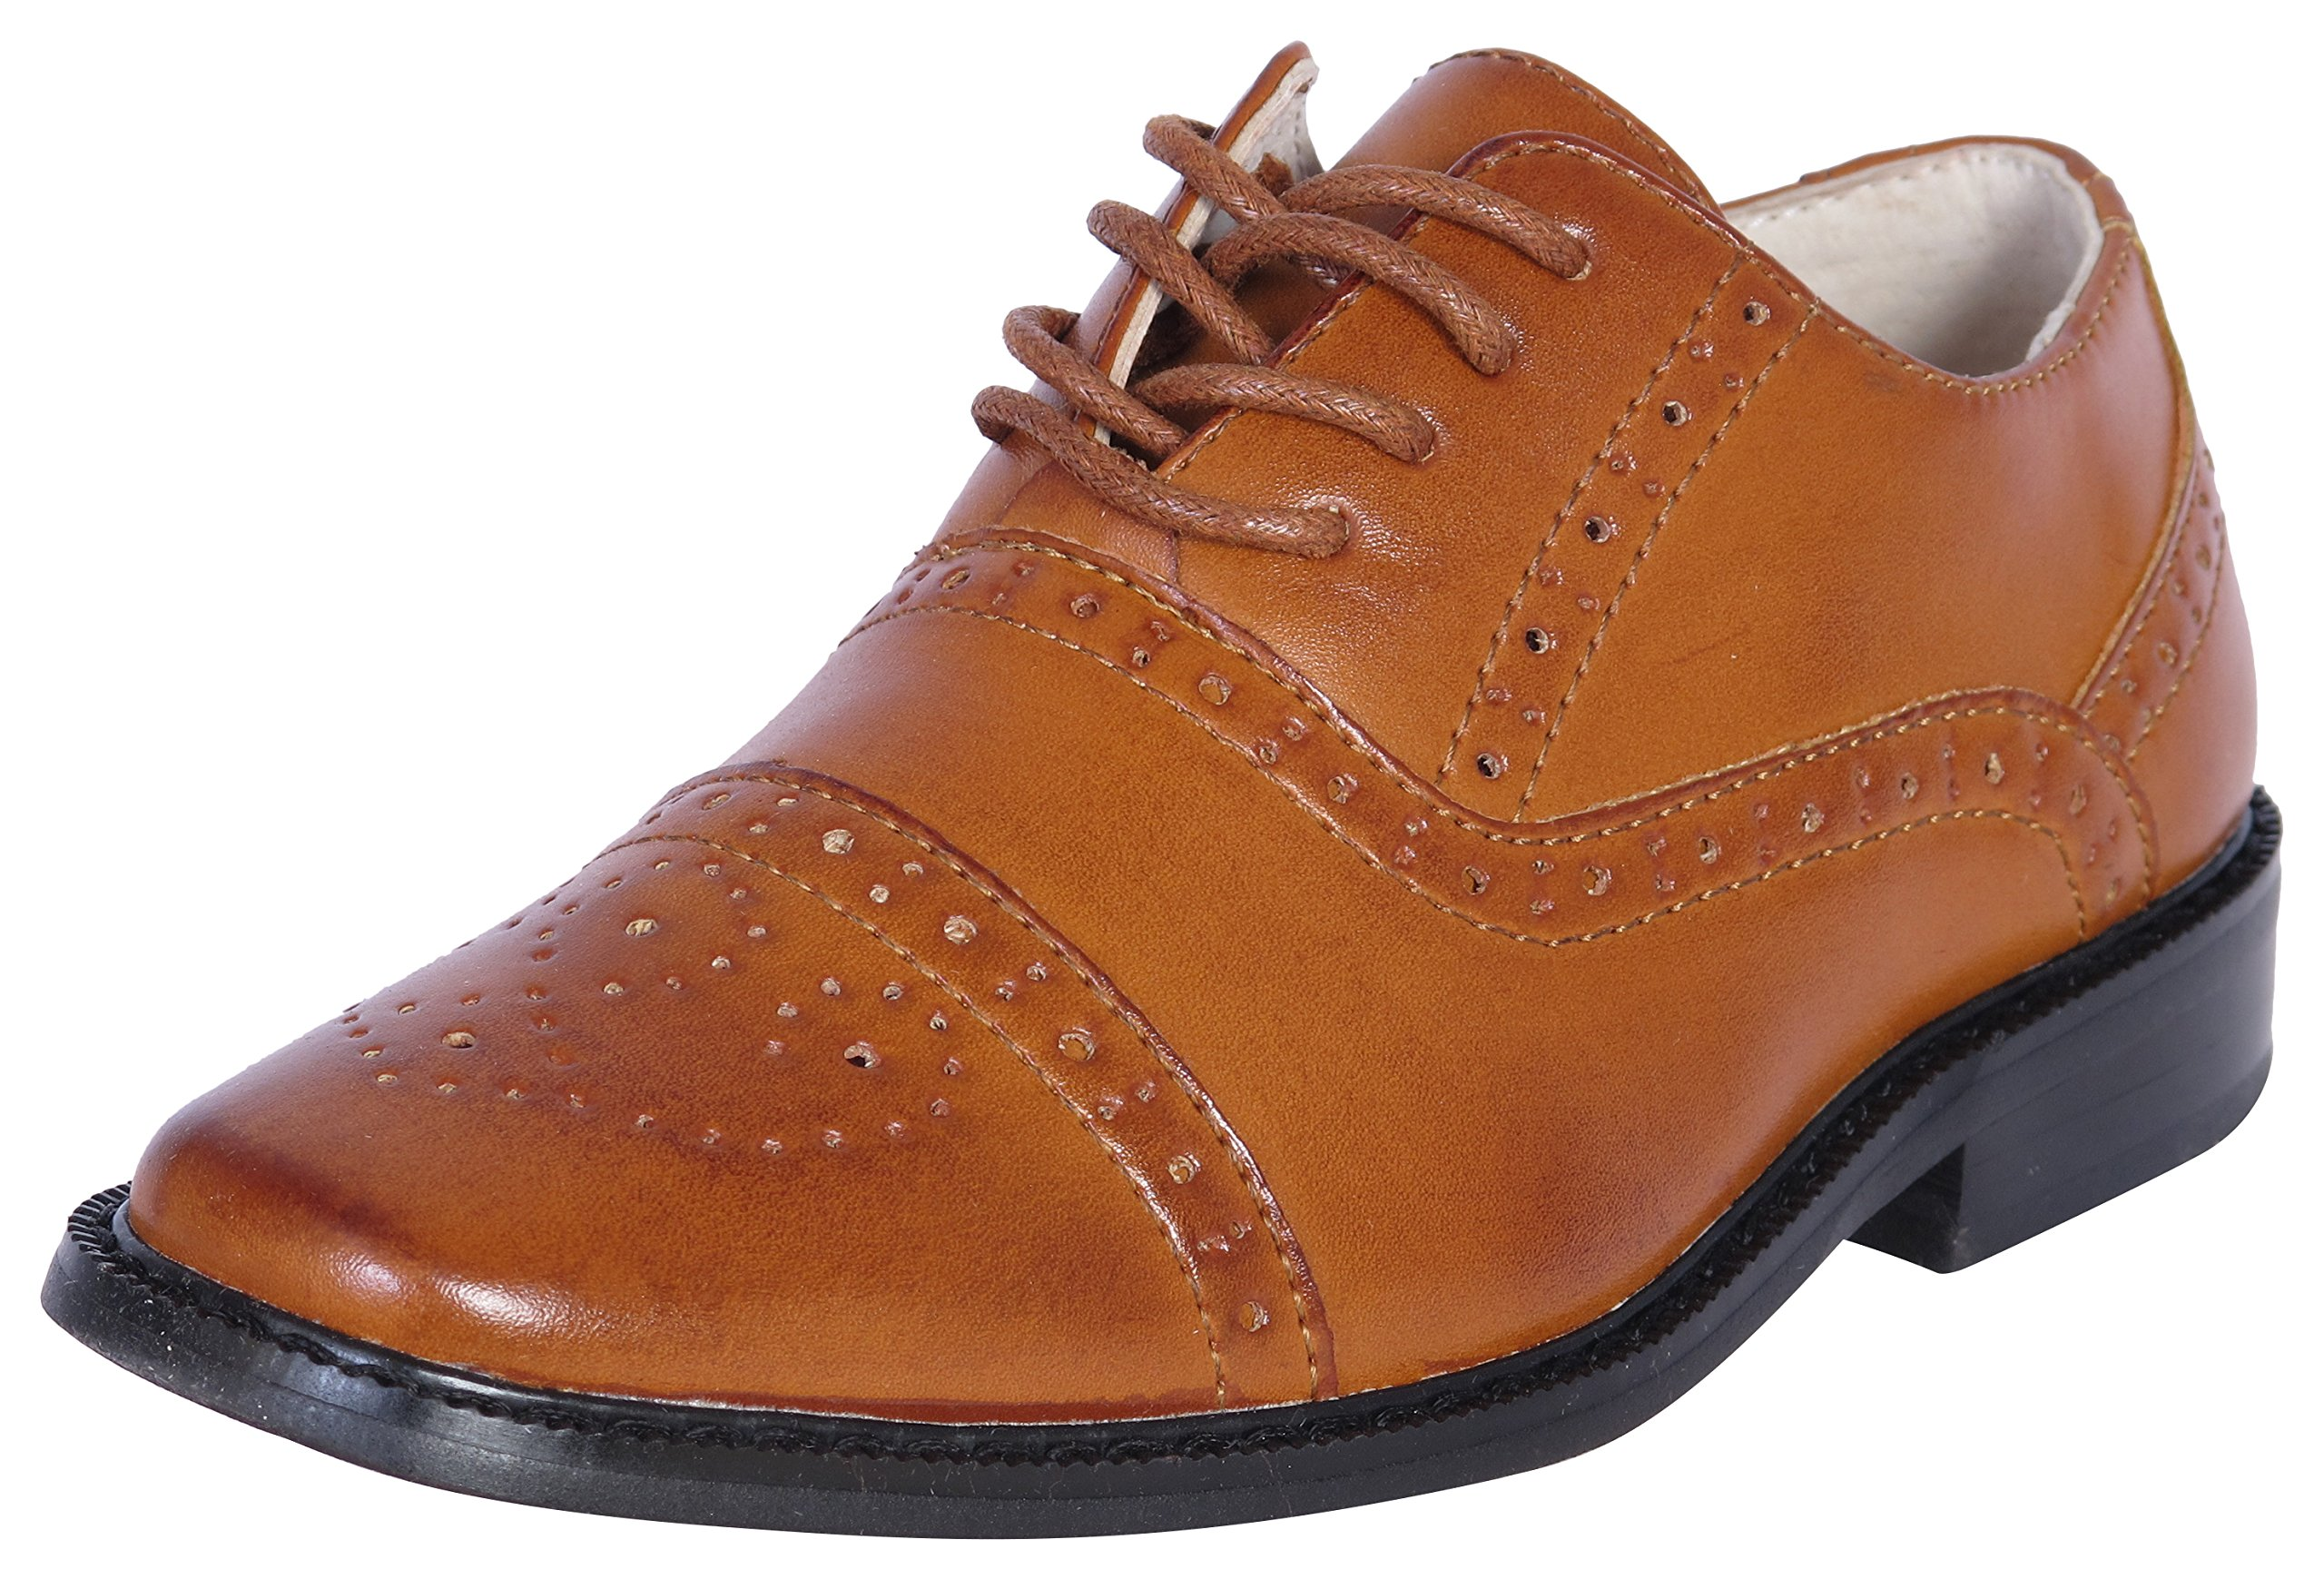 Joseph Allen Boys Wing Tip Perforated Oxford Dress Shoe, Tan, Size 9